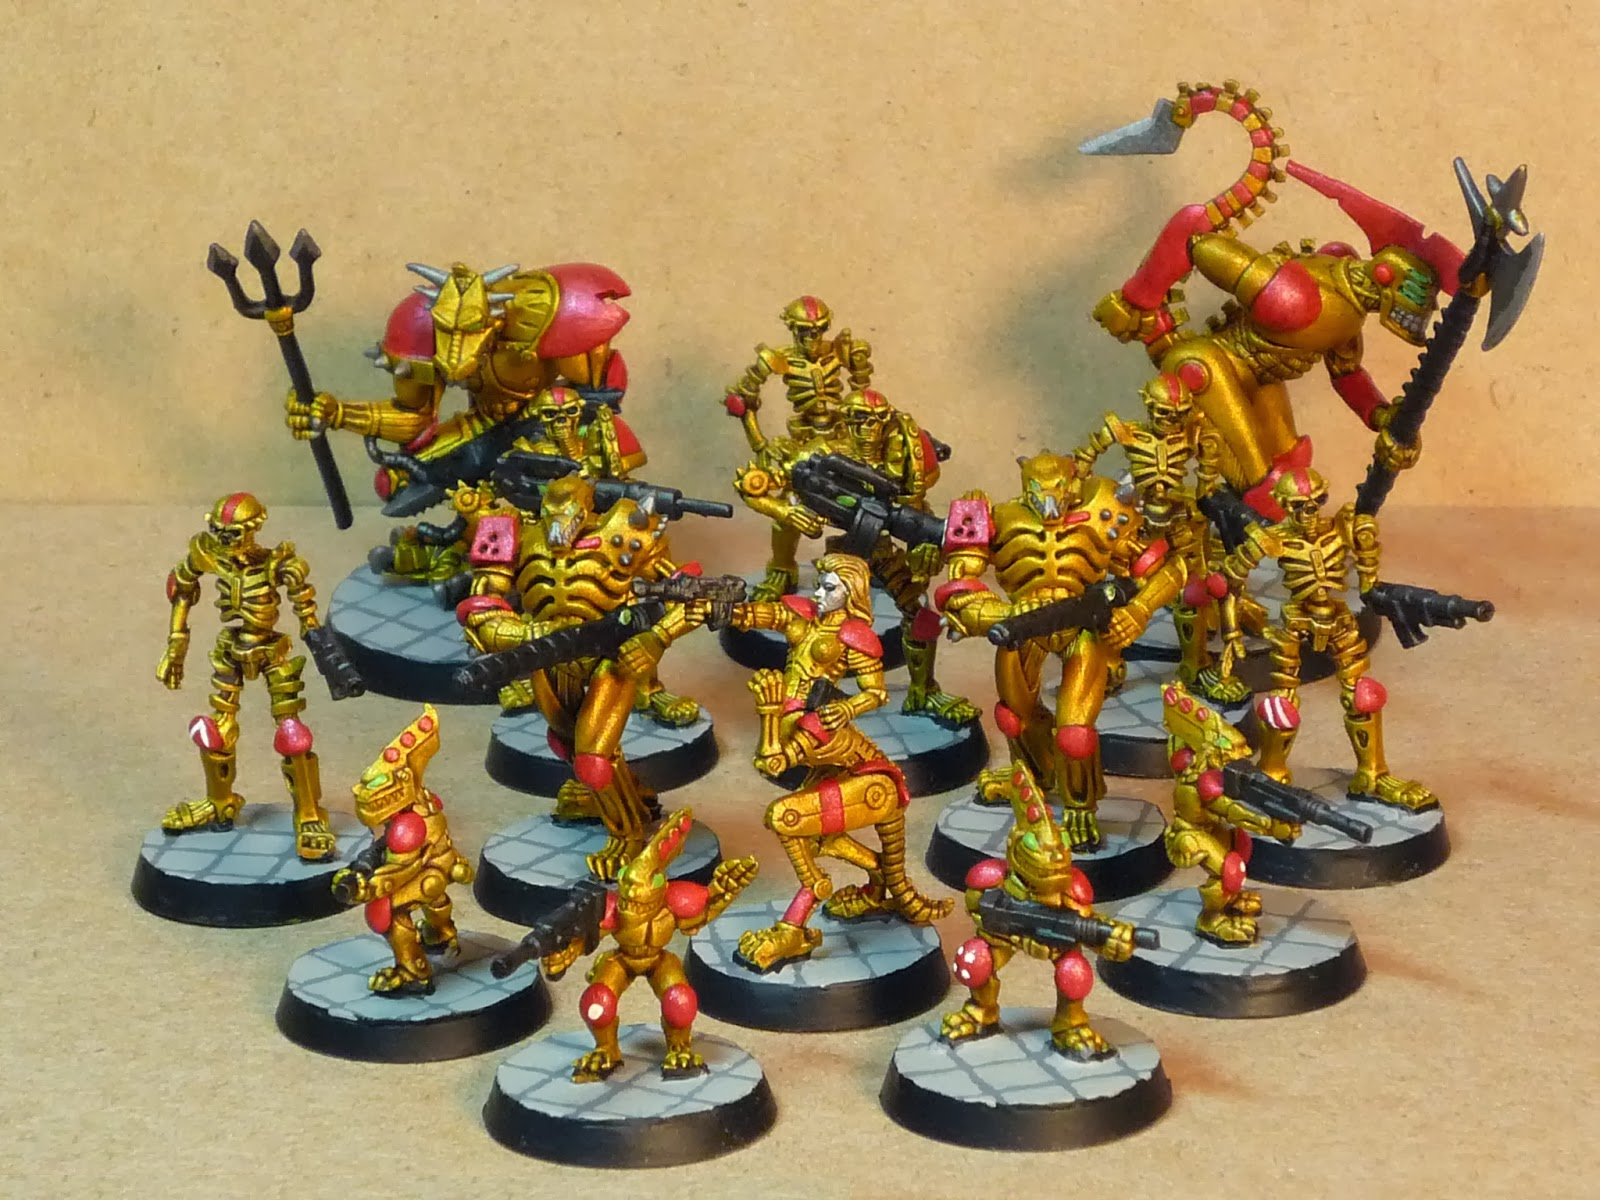 Smhit legions of steel legion of gold now the time has come and so after twenty years i have finally put paint to model the legion arises publicscrutiny Image collections